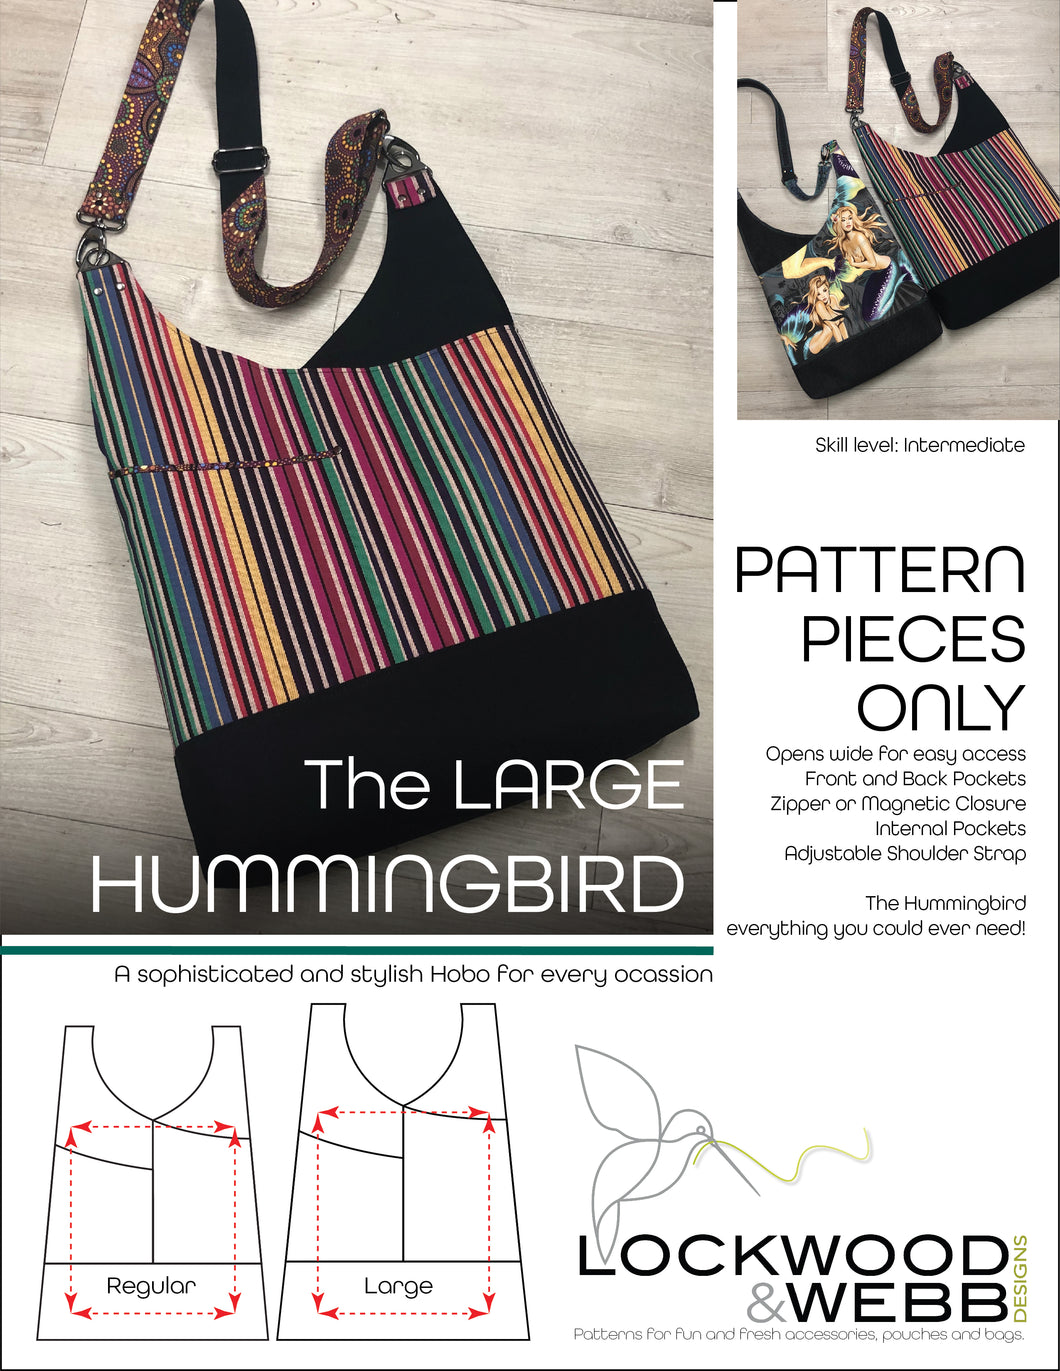 The Hummingbird Hobo LARGE - PATTERN PIECES Only